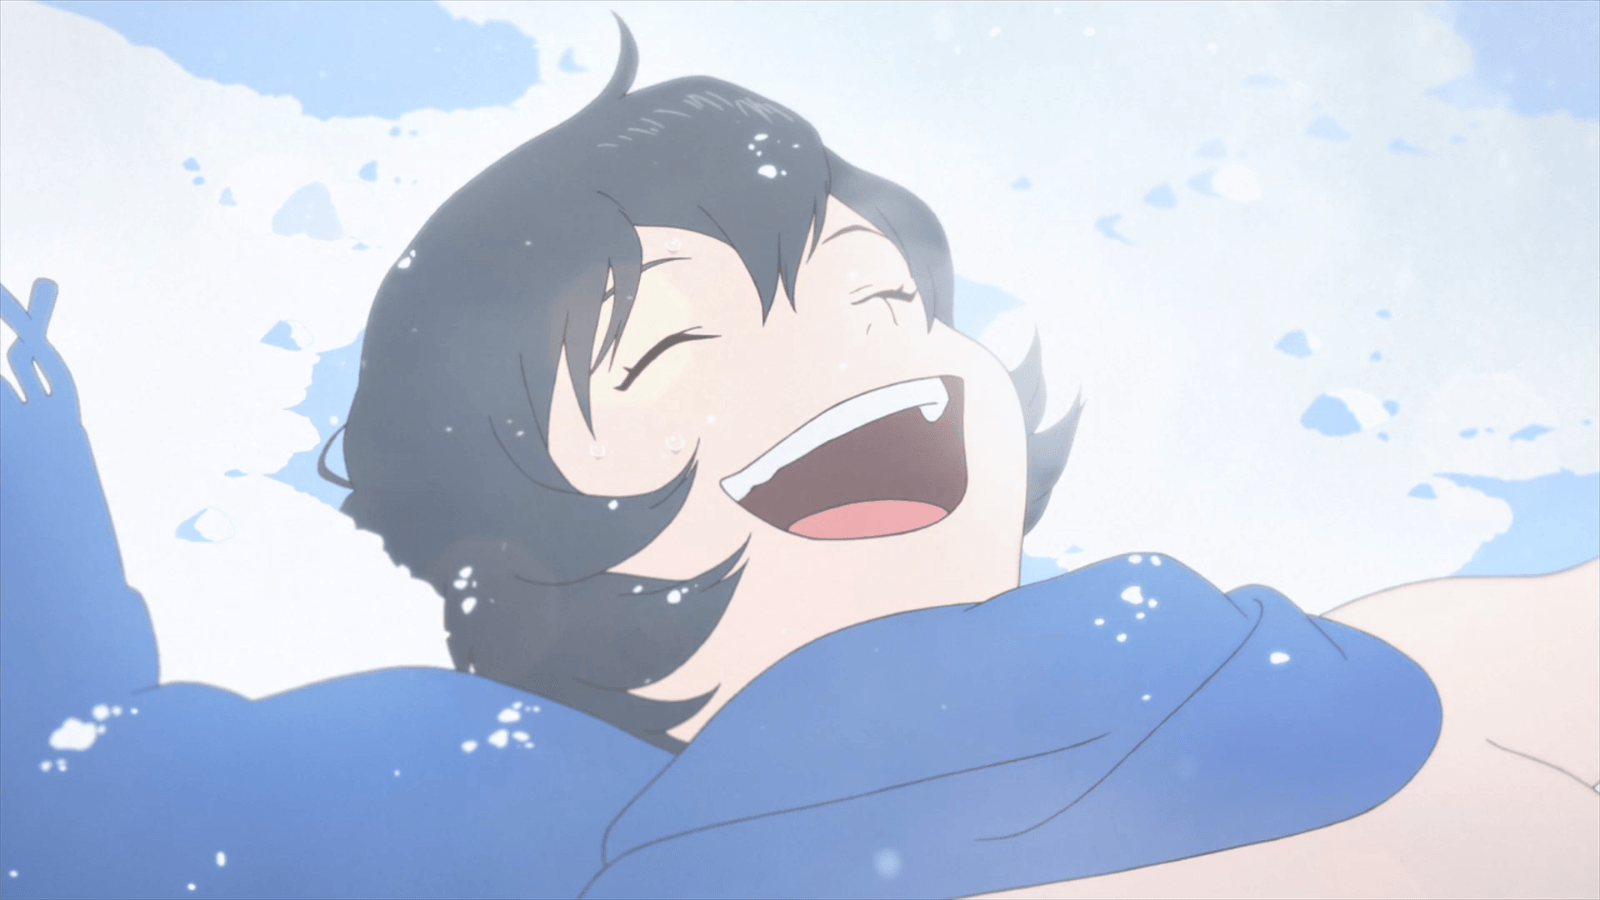 Ame smiling on snow